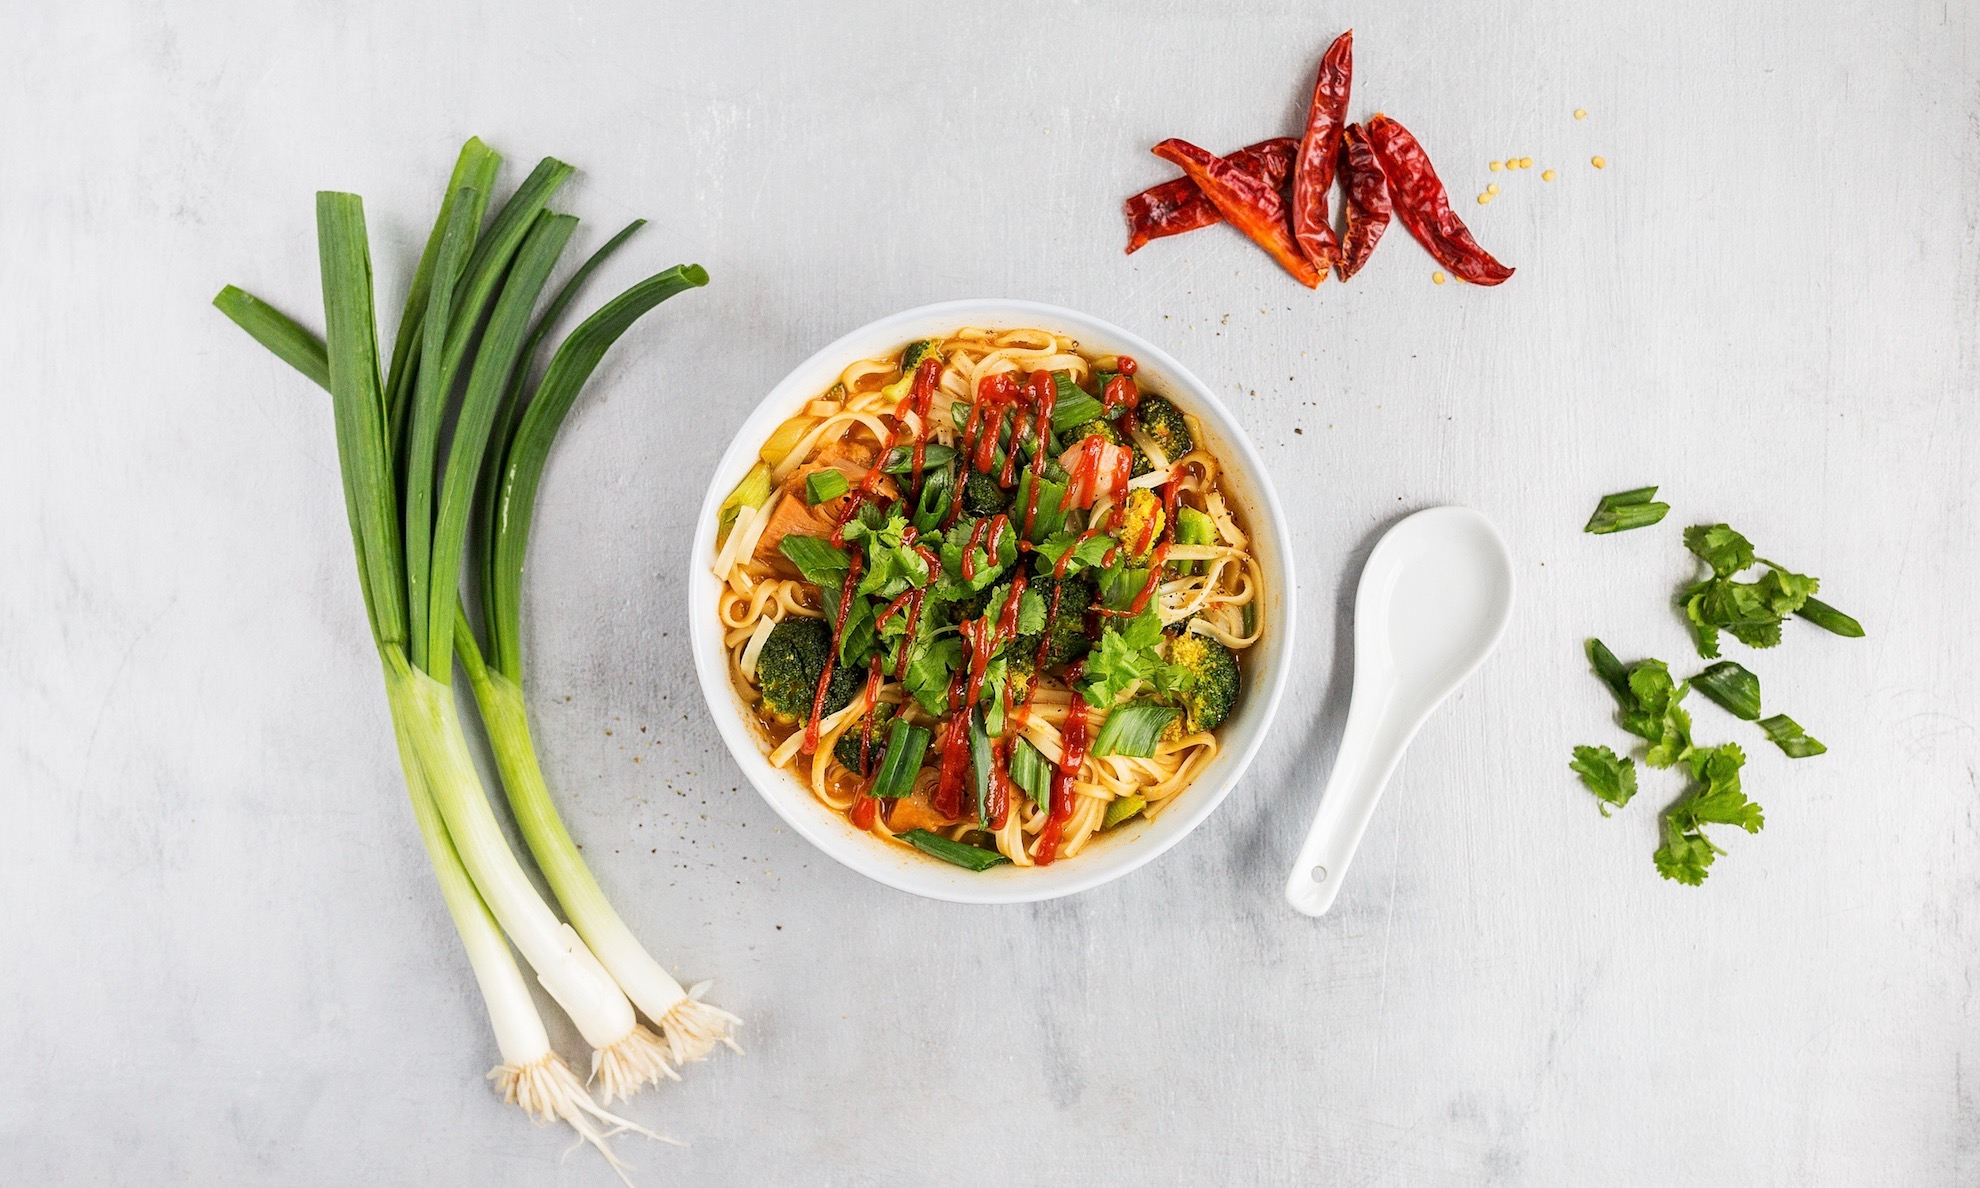 15-Minute Noodle Soup with Sriracha Jackfruit